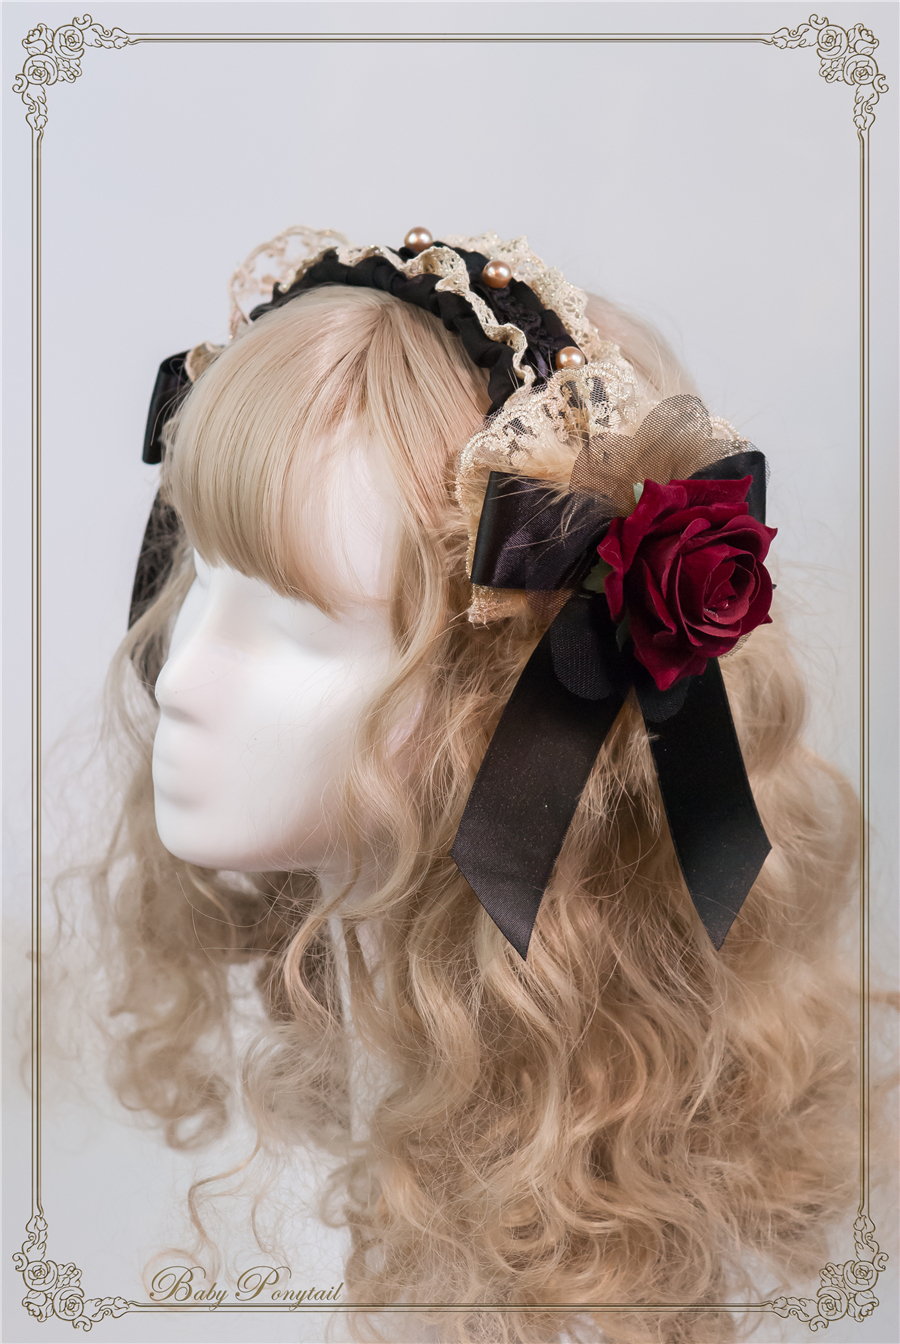 Baby Ponytail_Stock photo_Circus Princess_Rose Head Dress Black_01.jpg